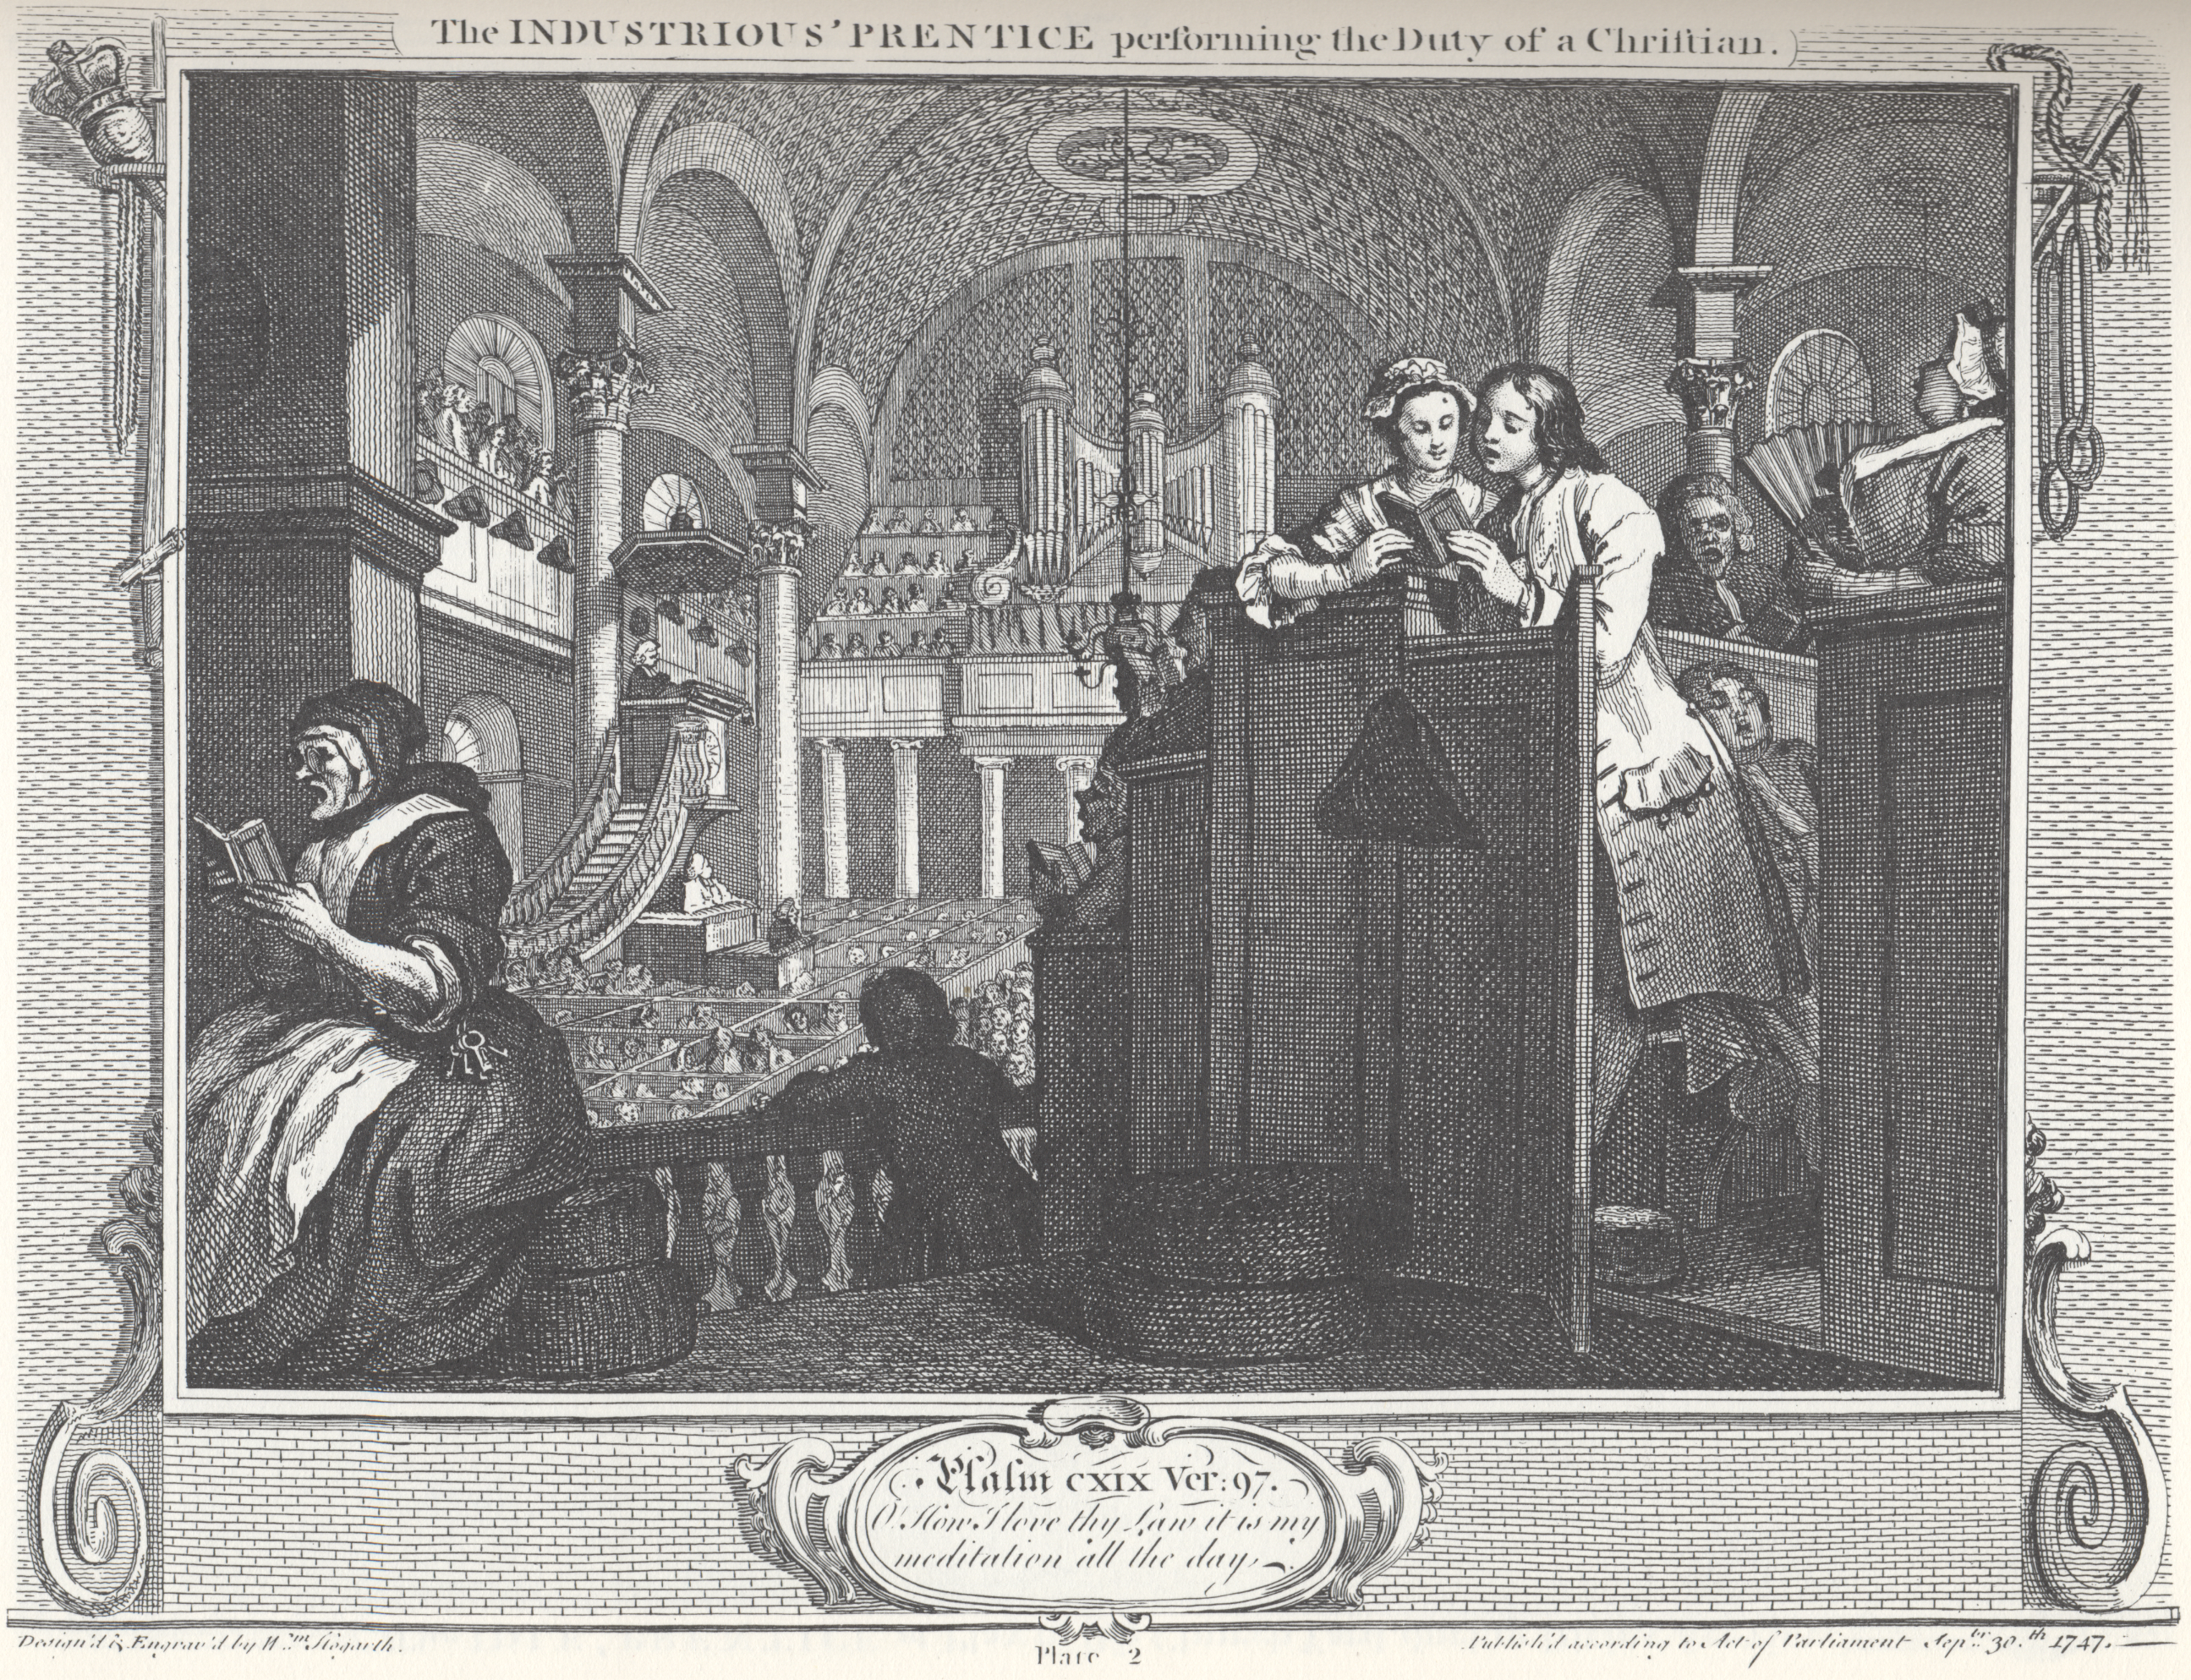 industry and idleness plate 2 the industrious prentice performing the duty of a christian edit